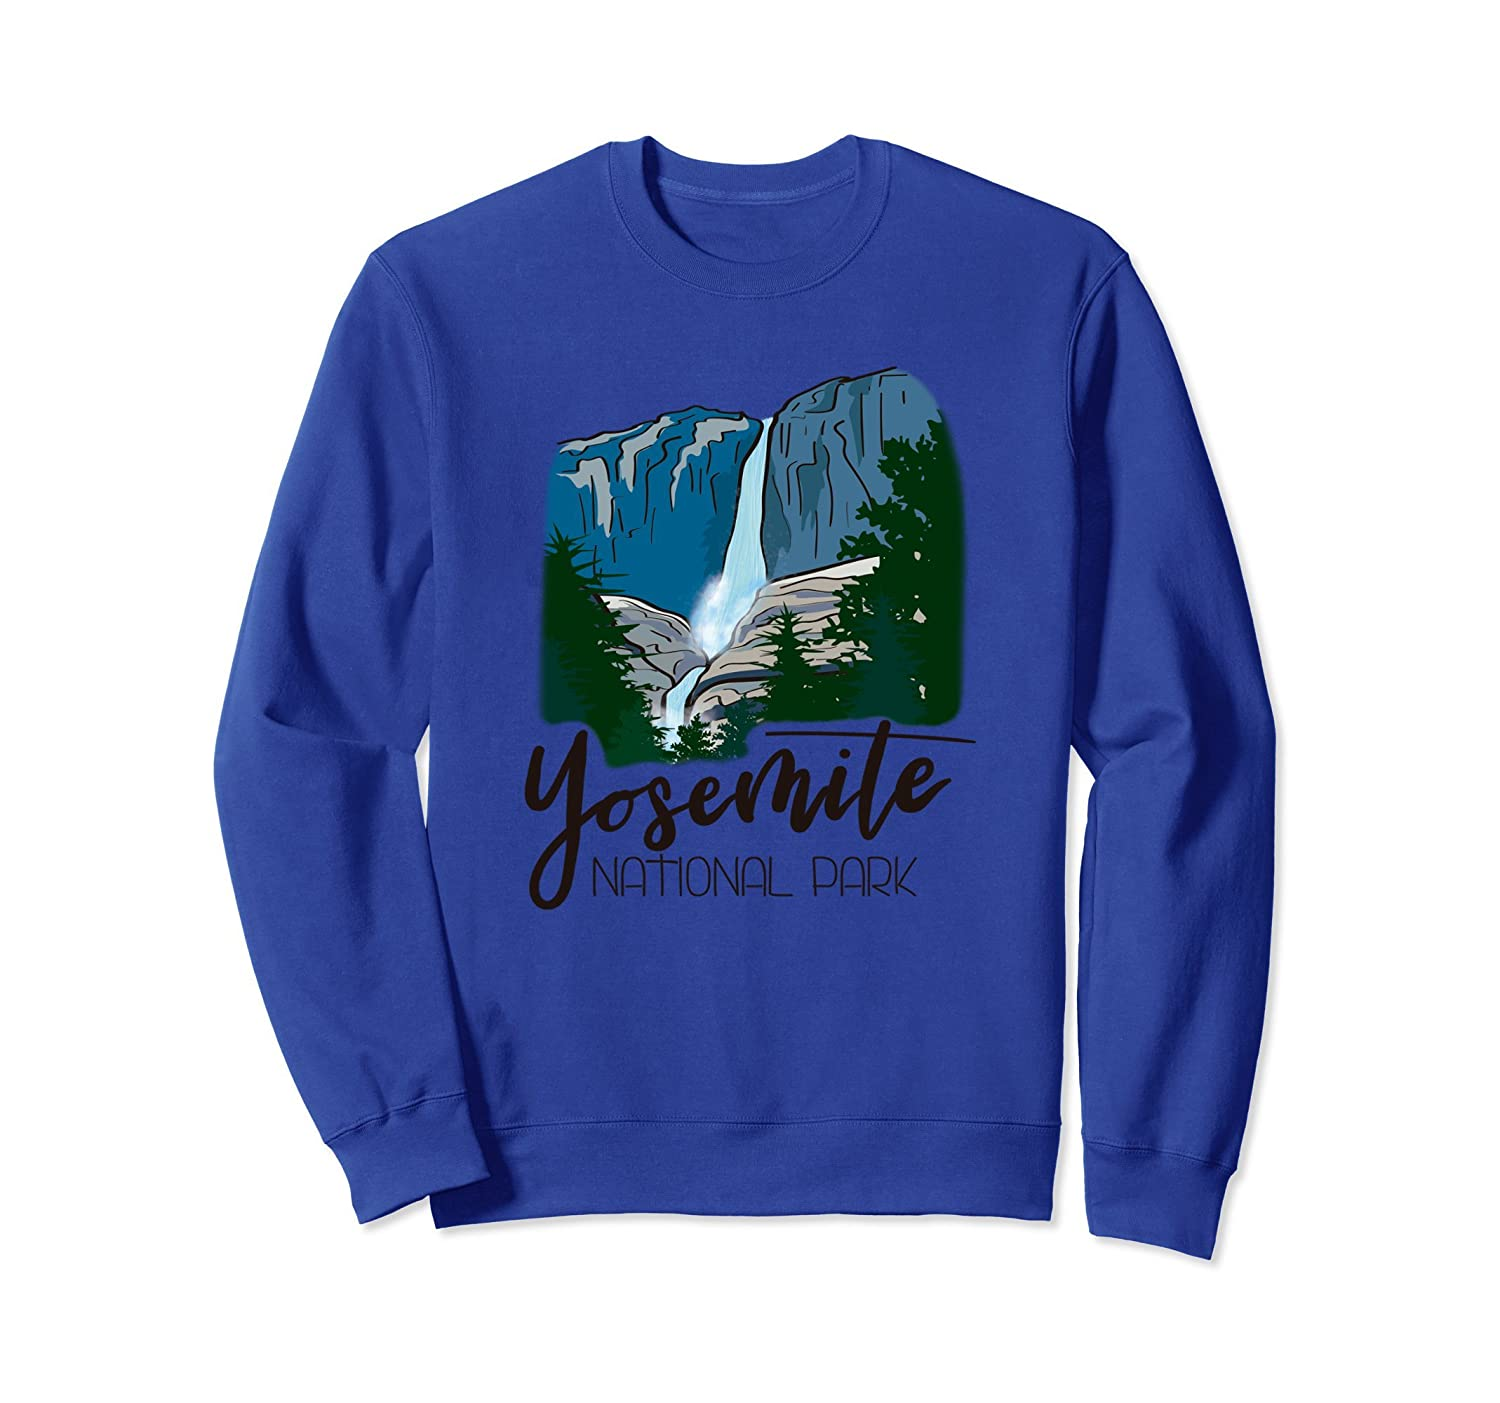 Yosemite Falls National Park - Park Ranger Sweatshirt-ah my shirt one gift